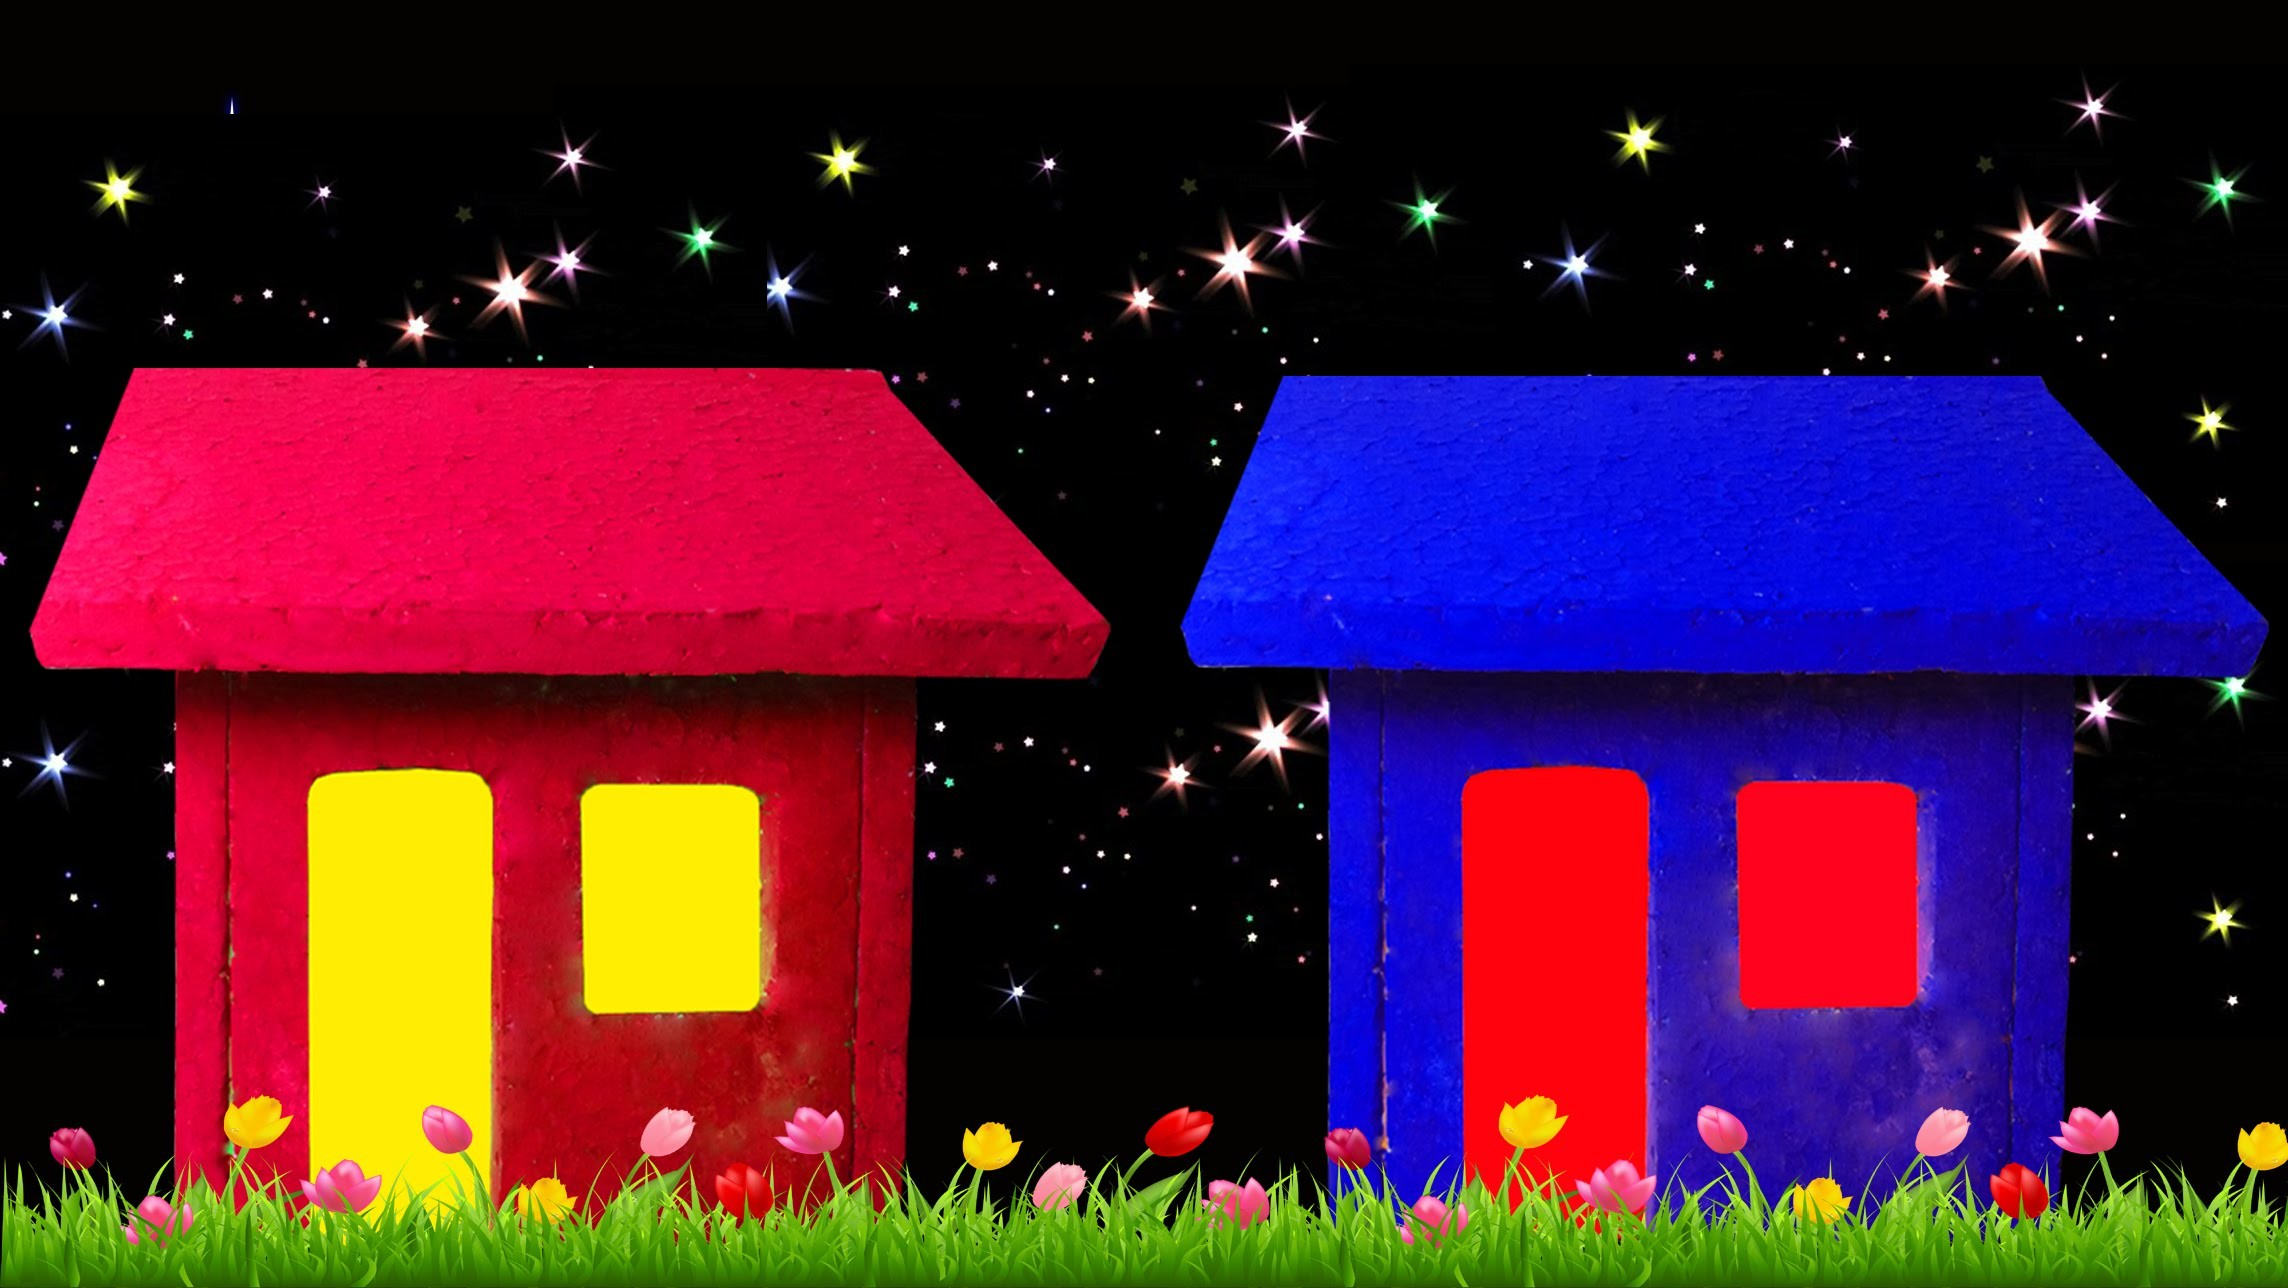 How to Make a Small Thermocol House (Christmas crafts) - HD